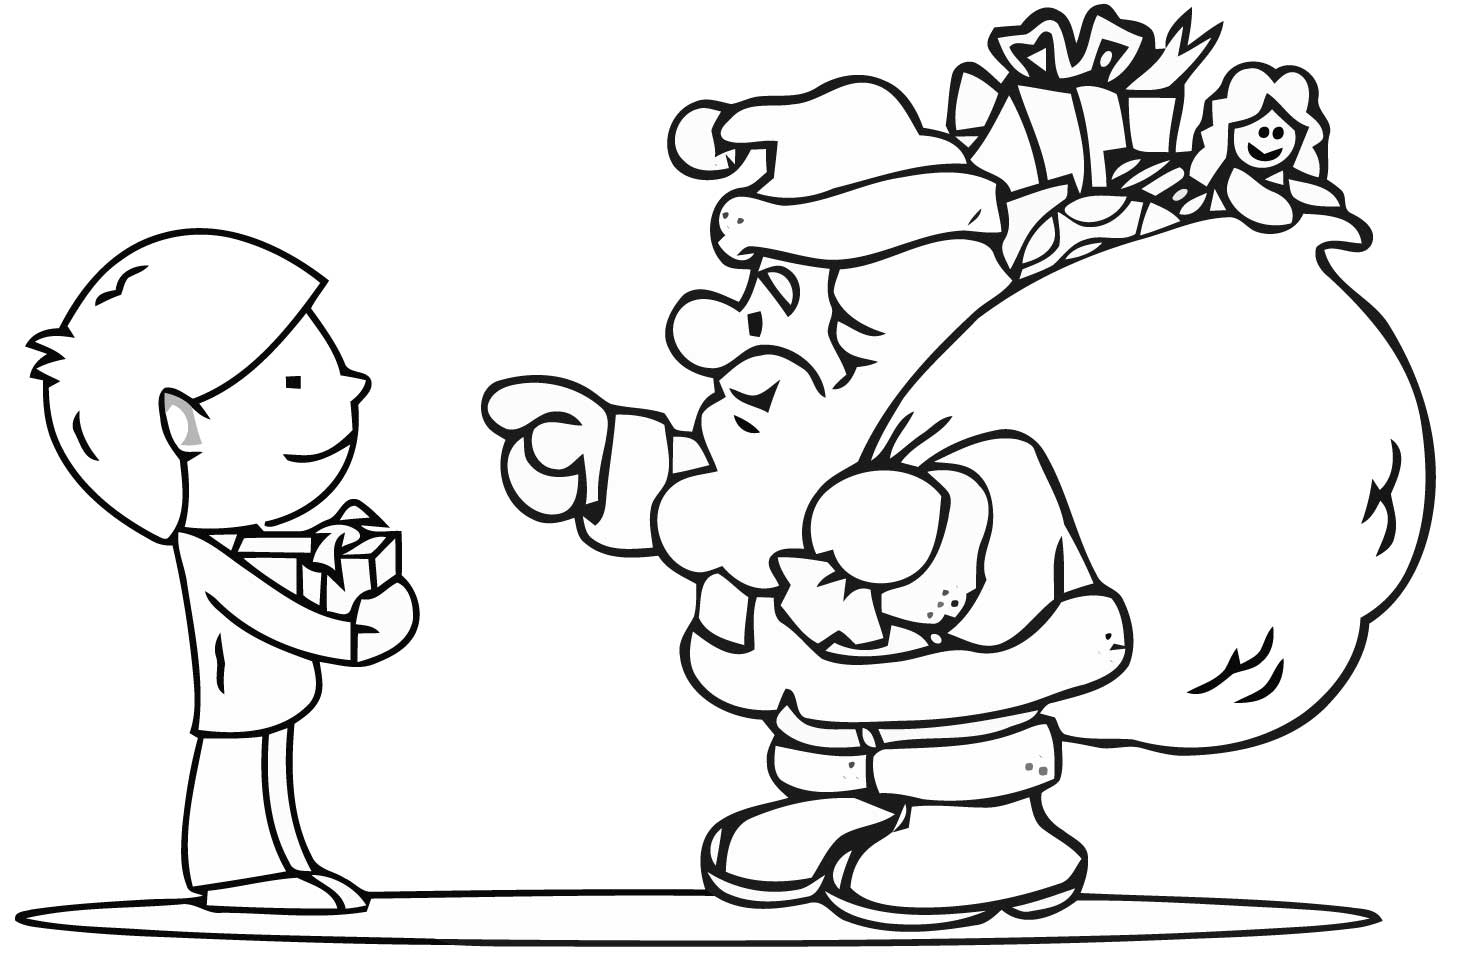 coloring pages christams - photo#23